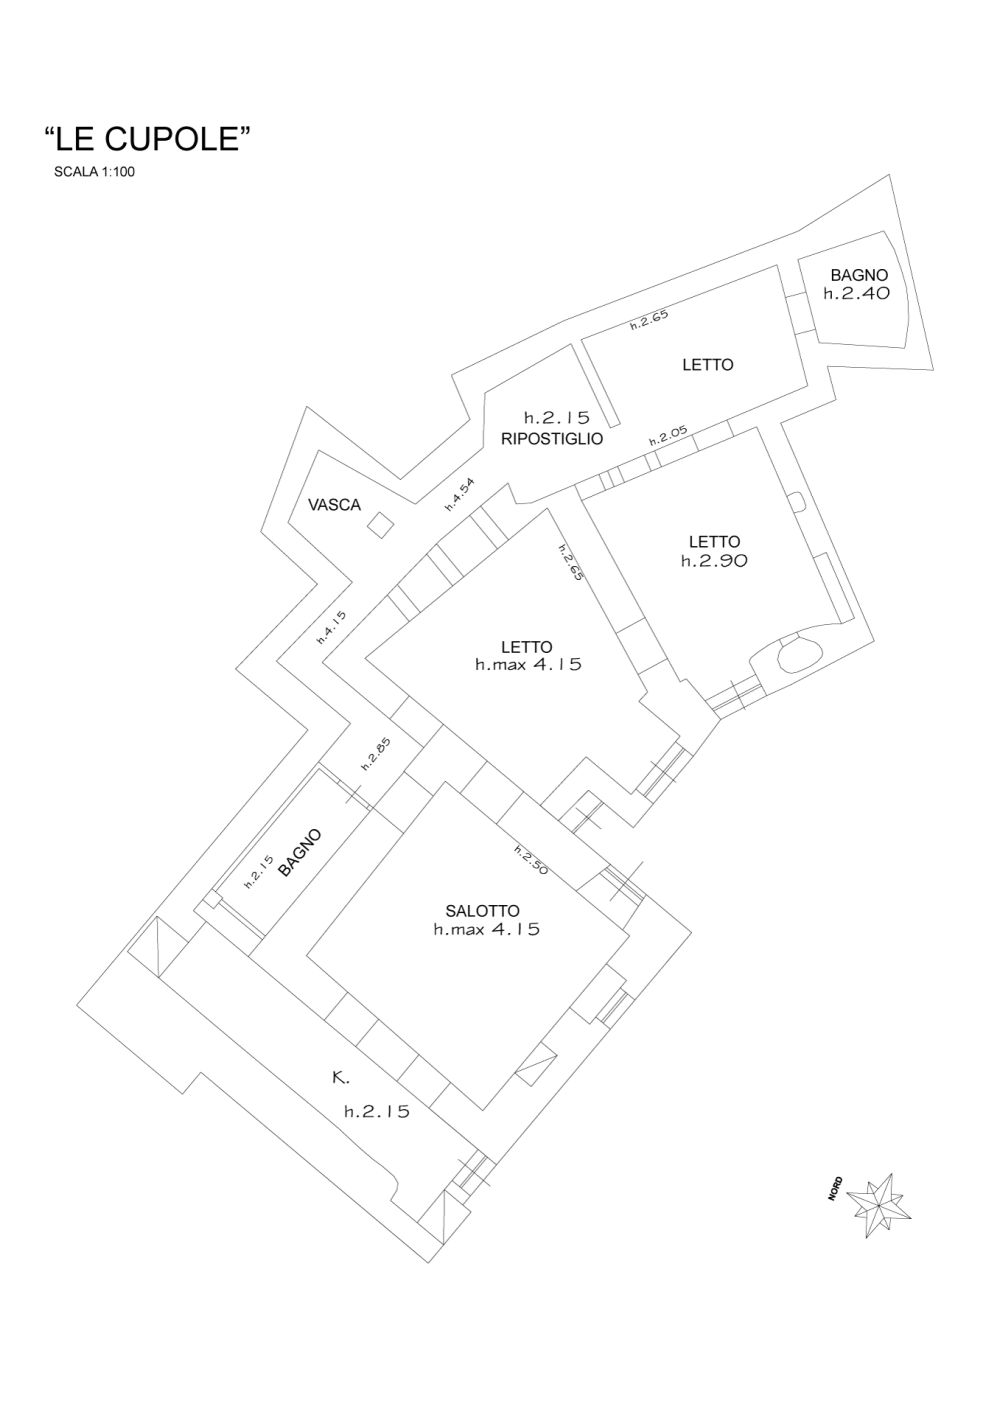 Le Cupole. Plan of the apartment